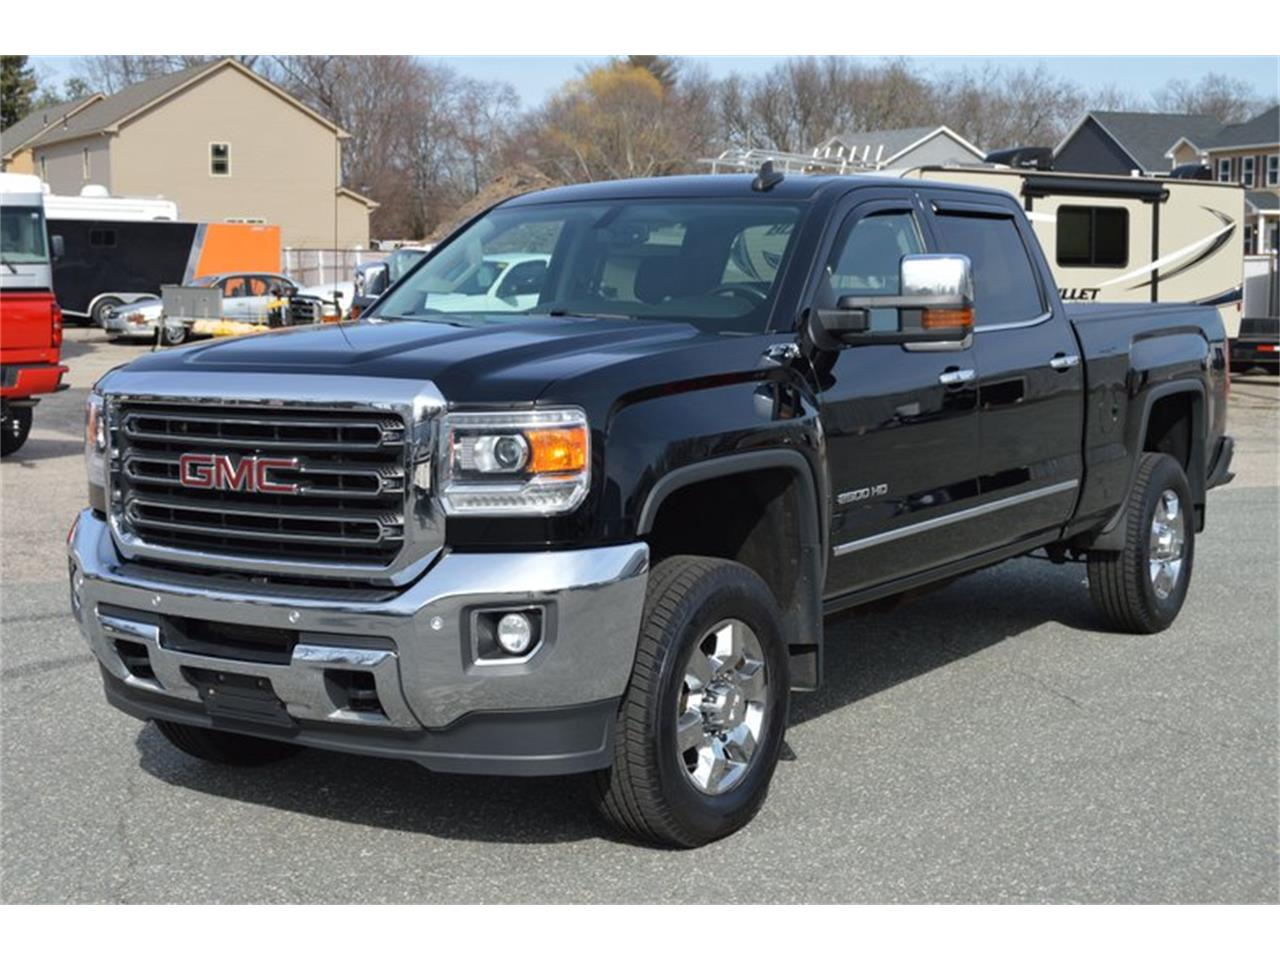 for sale 2016 gmc sierra in springfield, massachusetts cars - springfield, ma at geebo